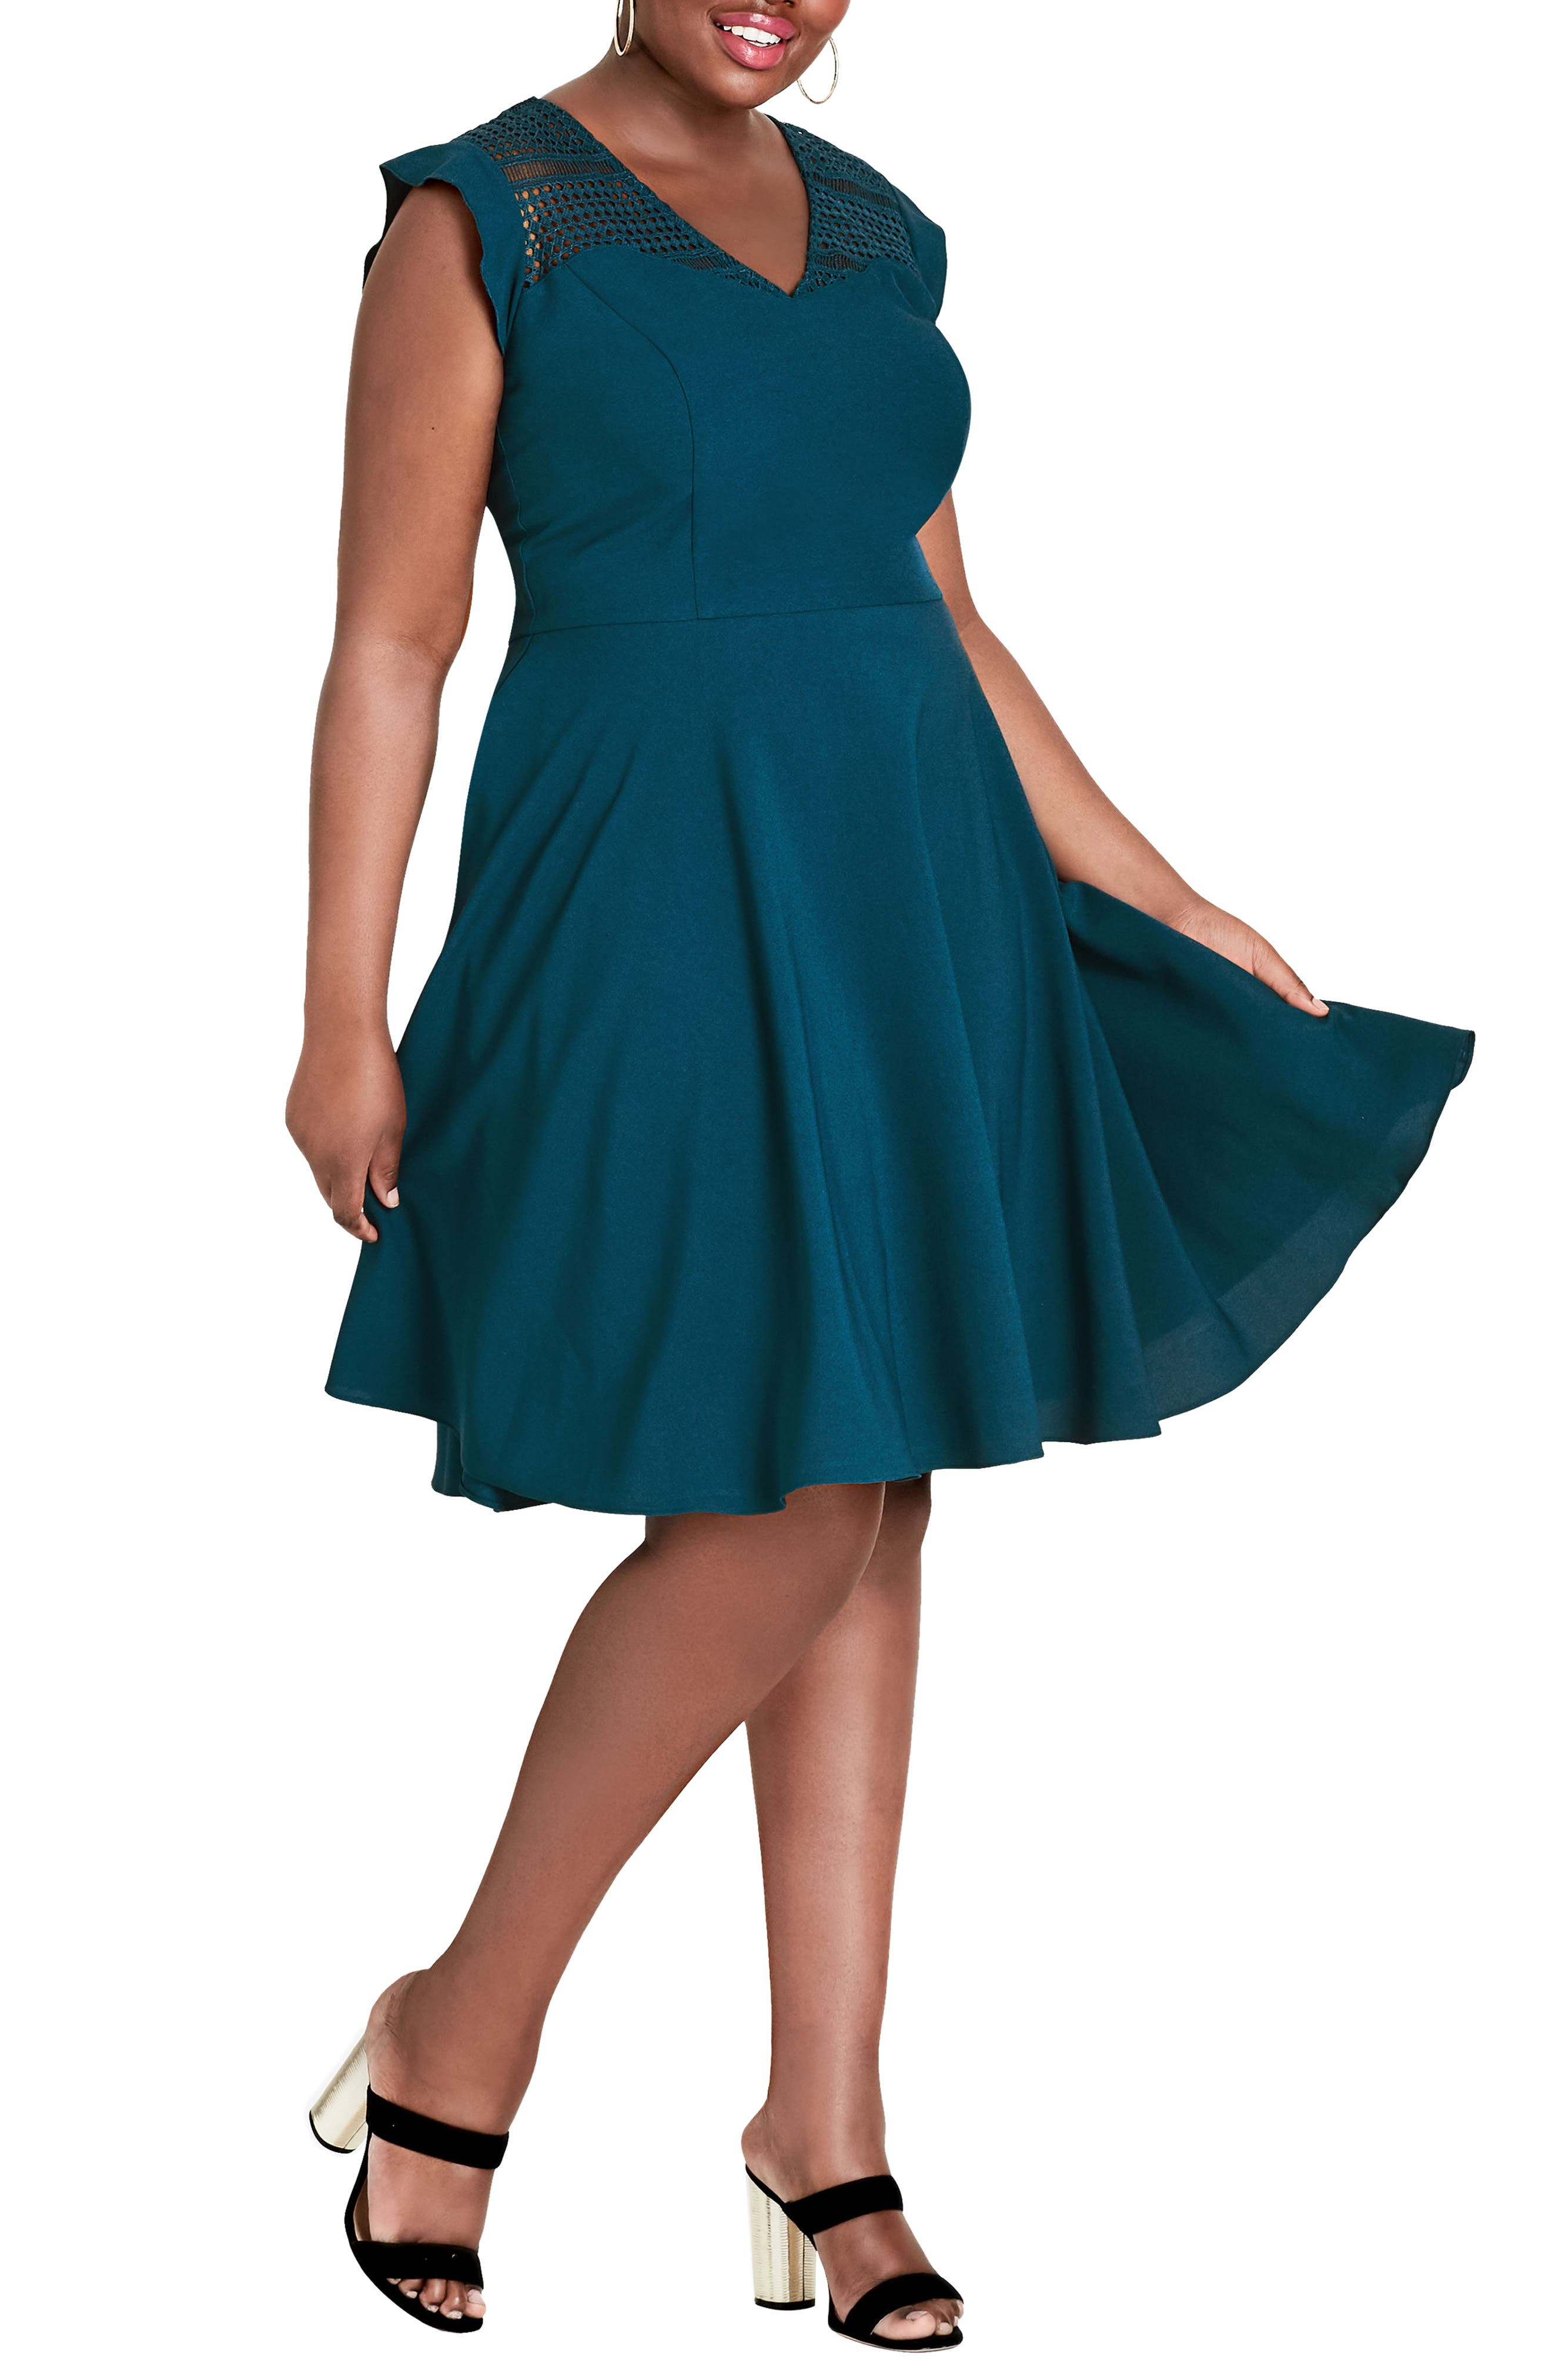 First Place Crochet Yoke Fit & Flare Dress,                         Main,                         color, Teal